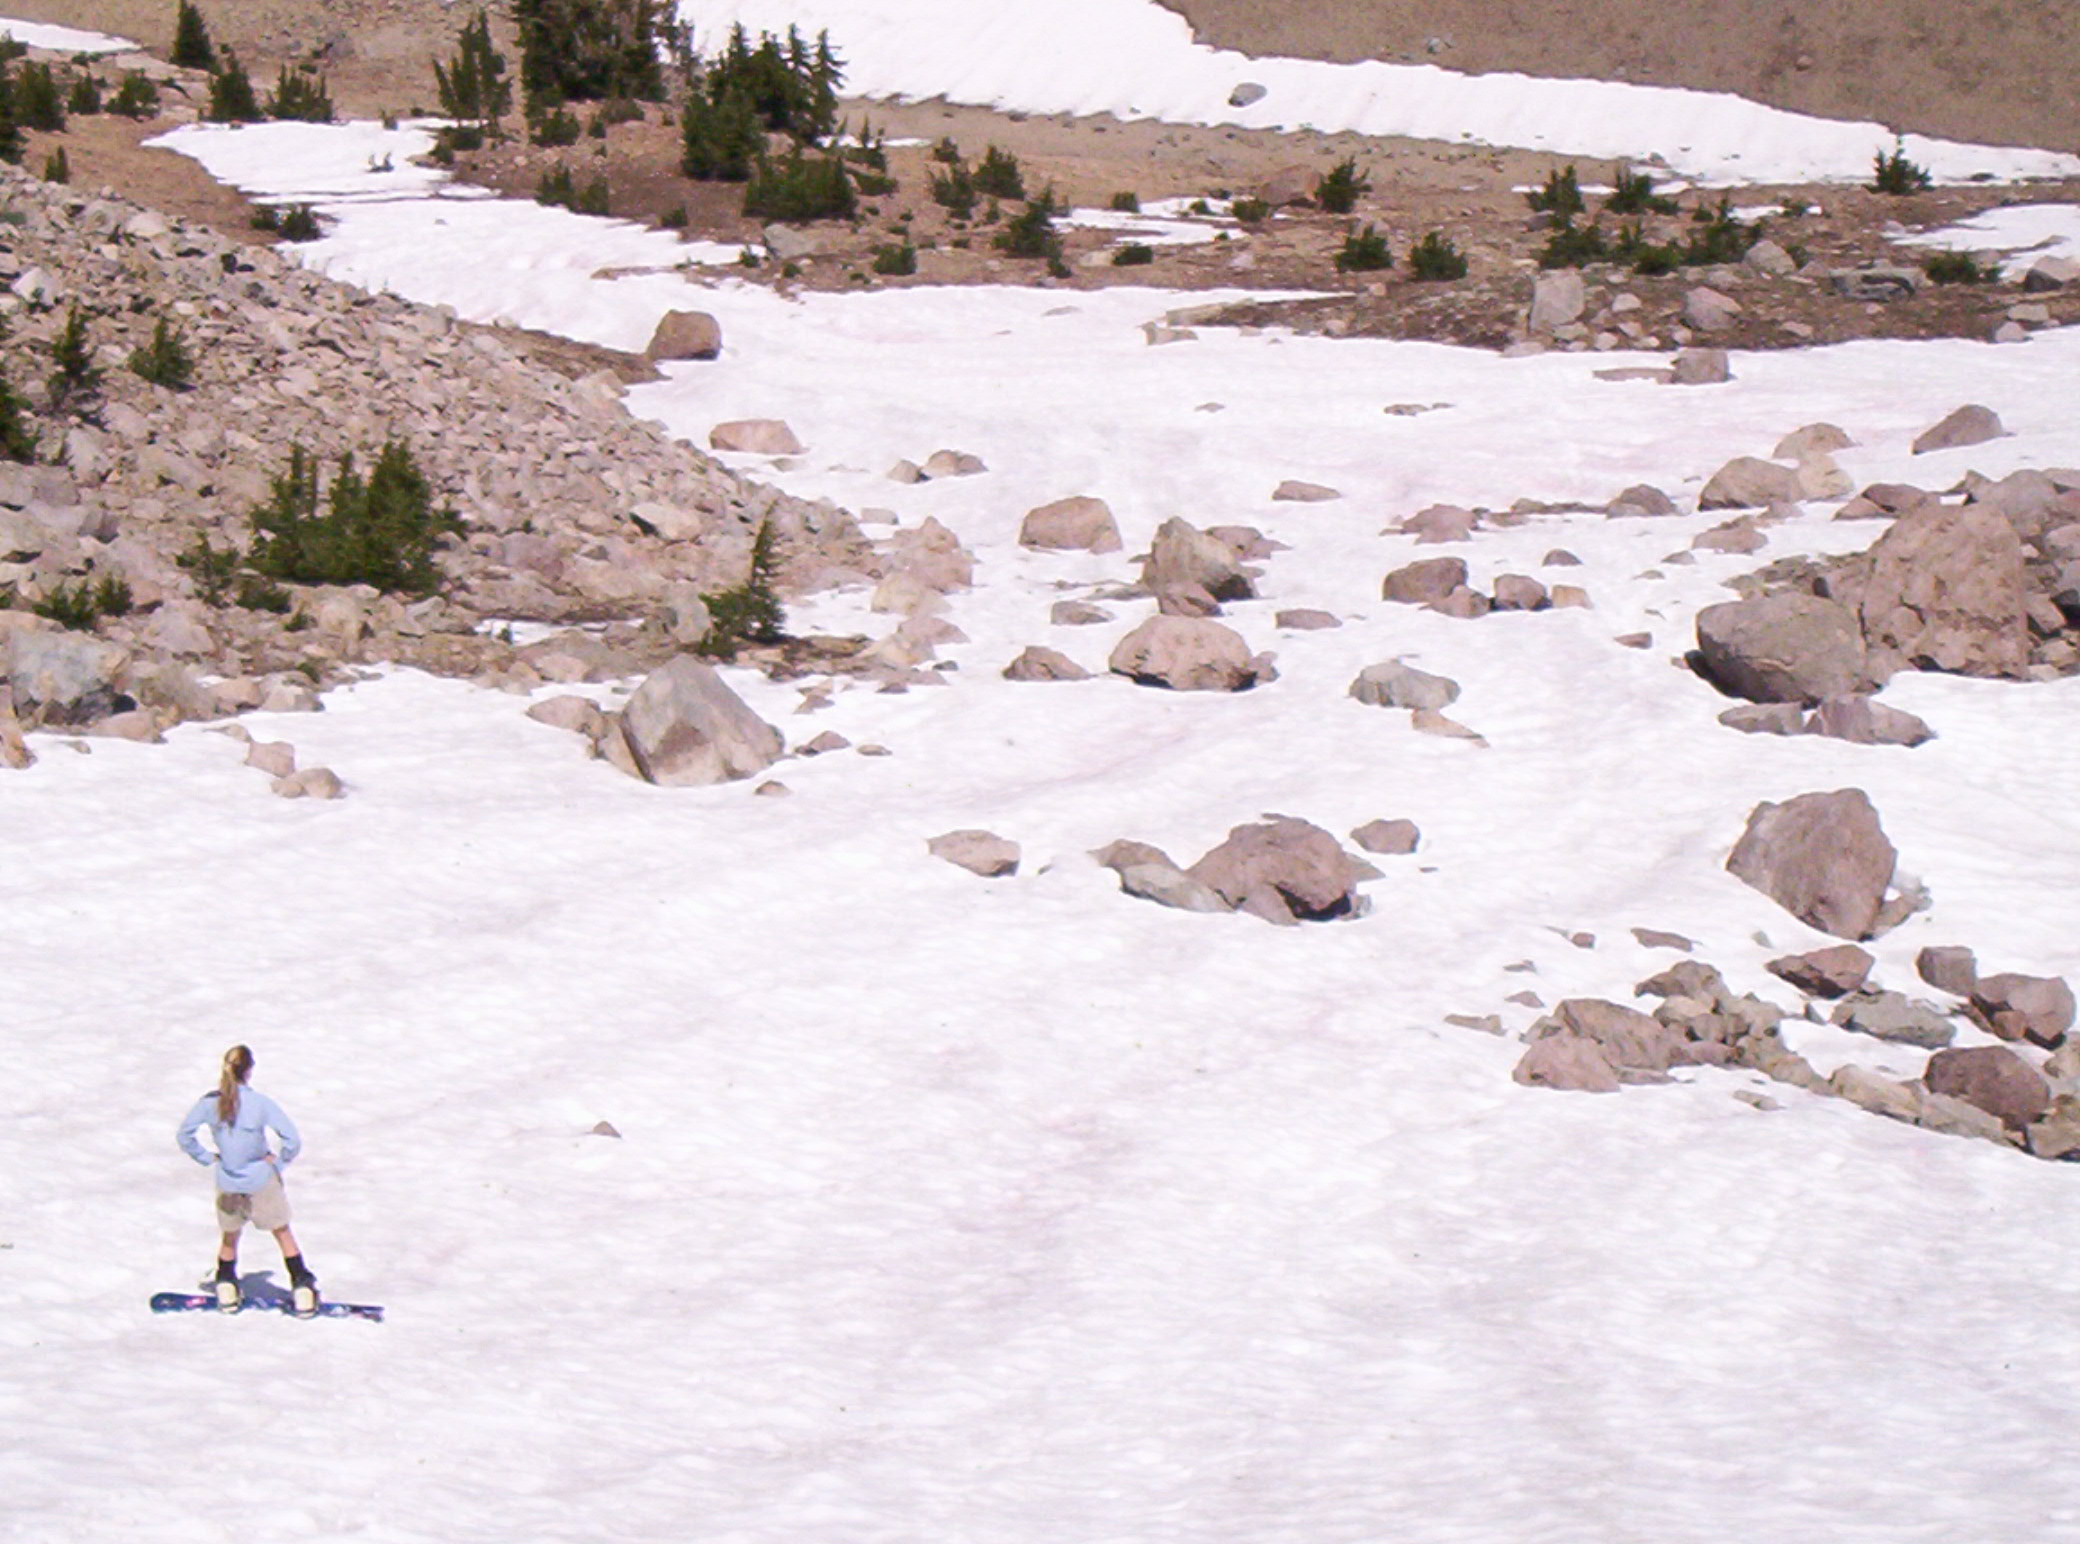 Late season skiing, August 2005